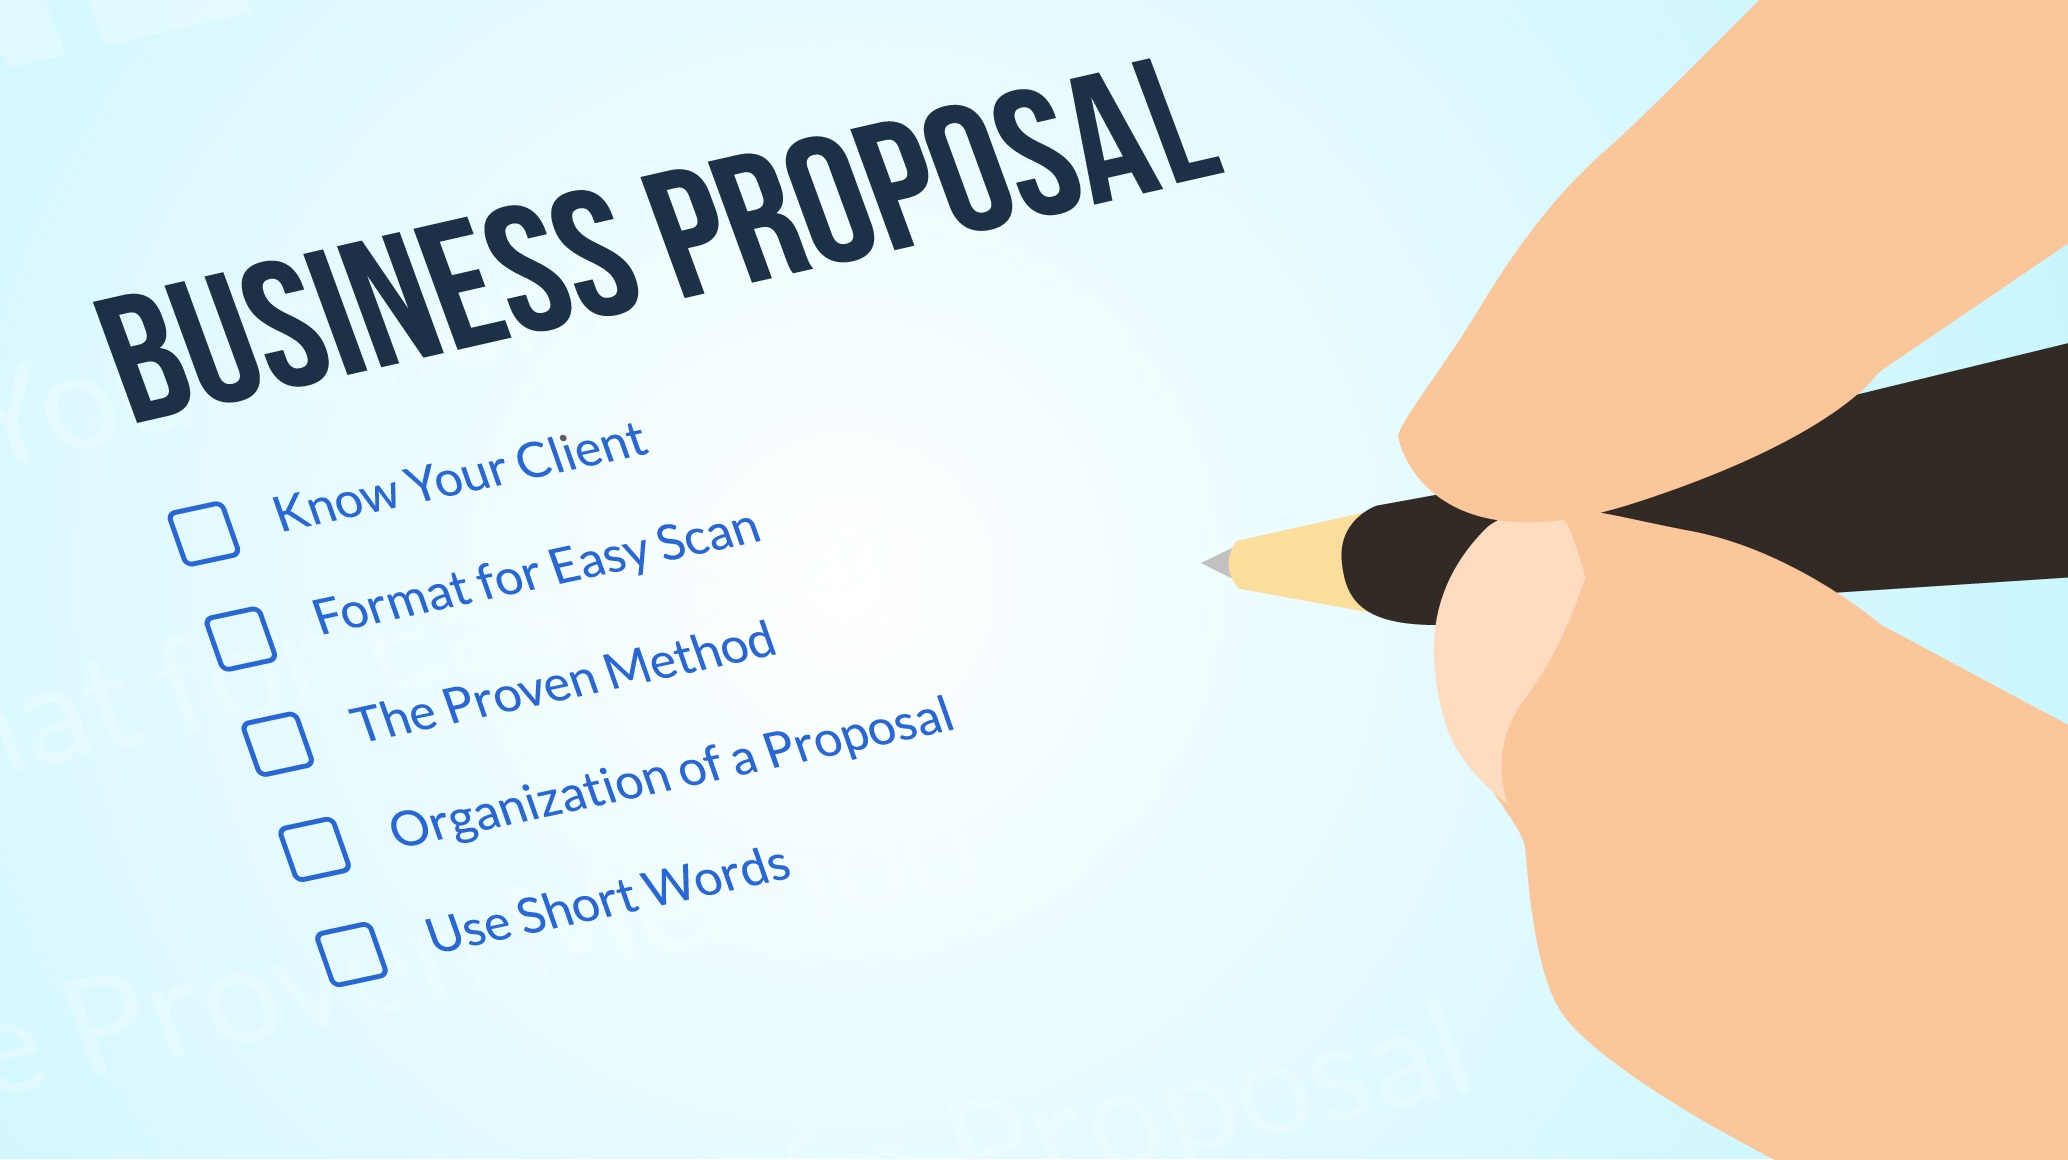 tips for writing a business proposal Improve your proposal responses and win rate to a request for proposals (rfp) and increase the proposal effectiveness for winning new business 5 quick tips to writing better winning proposals (rfp responses.